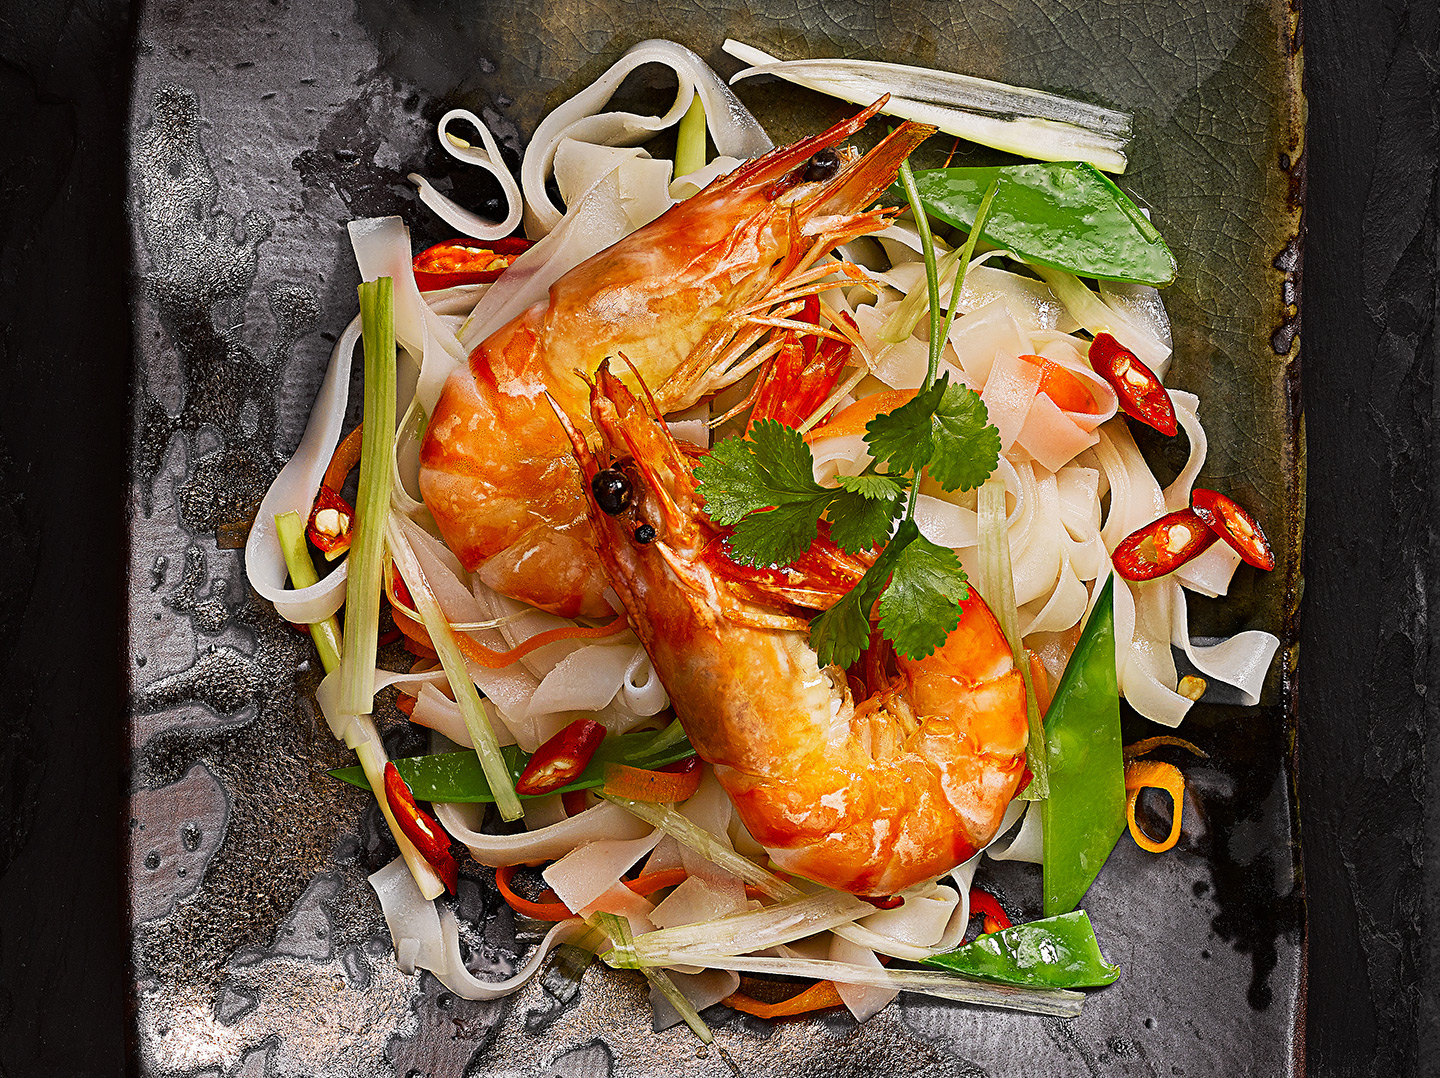 Prawn-noodle by London food photographer michael michaels